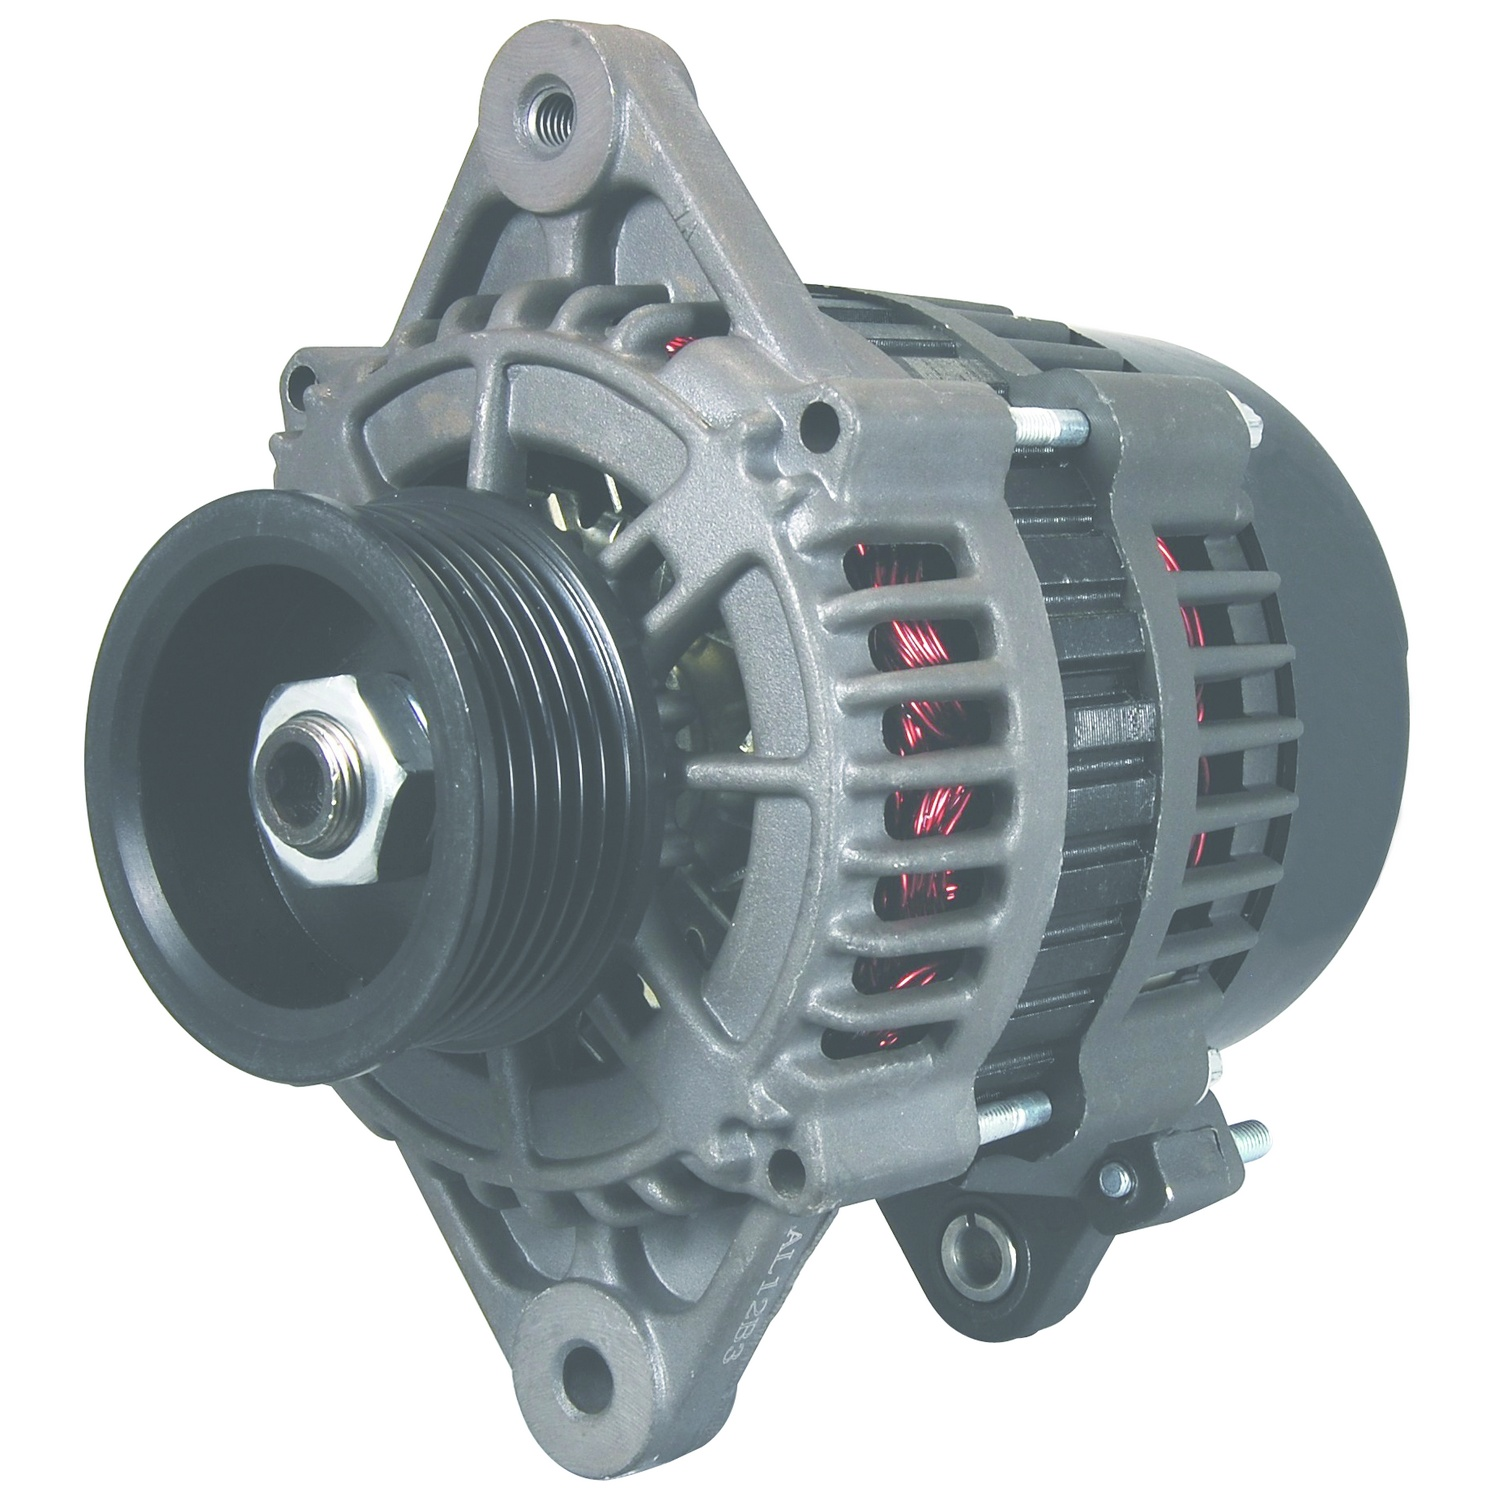 Alternator Mercruiser (1998-2002)  862031, 862031T, 862031T1